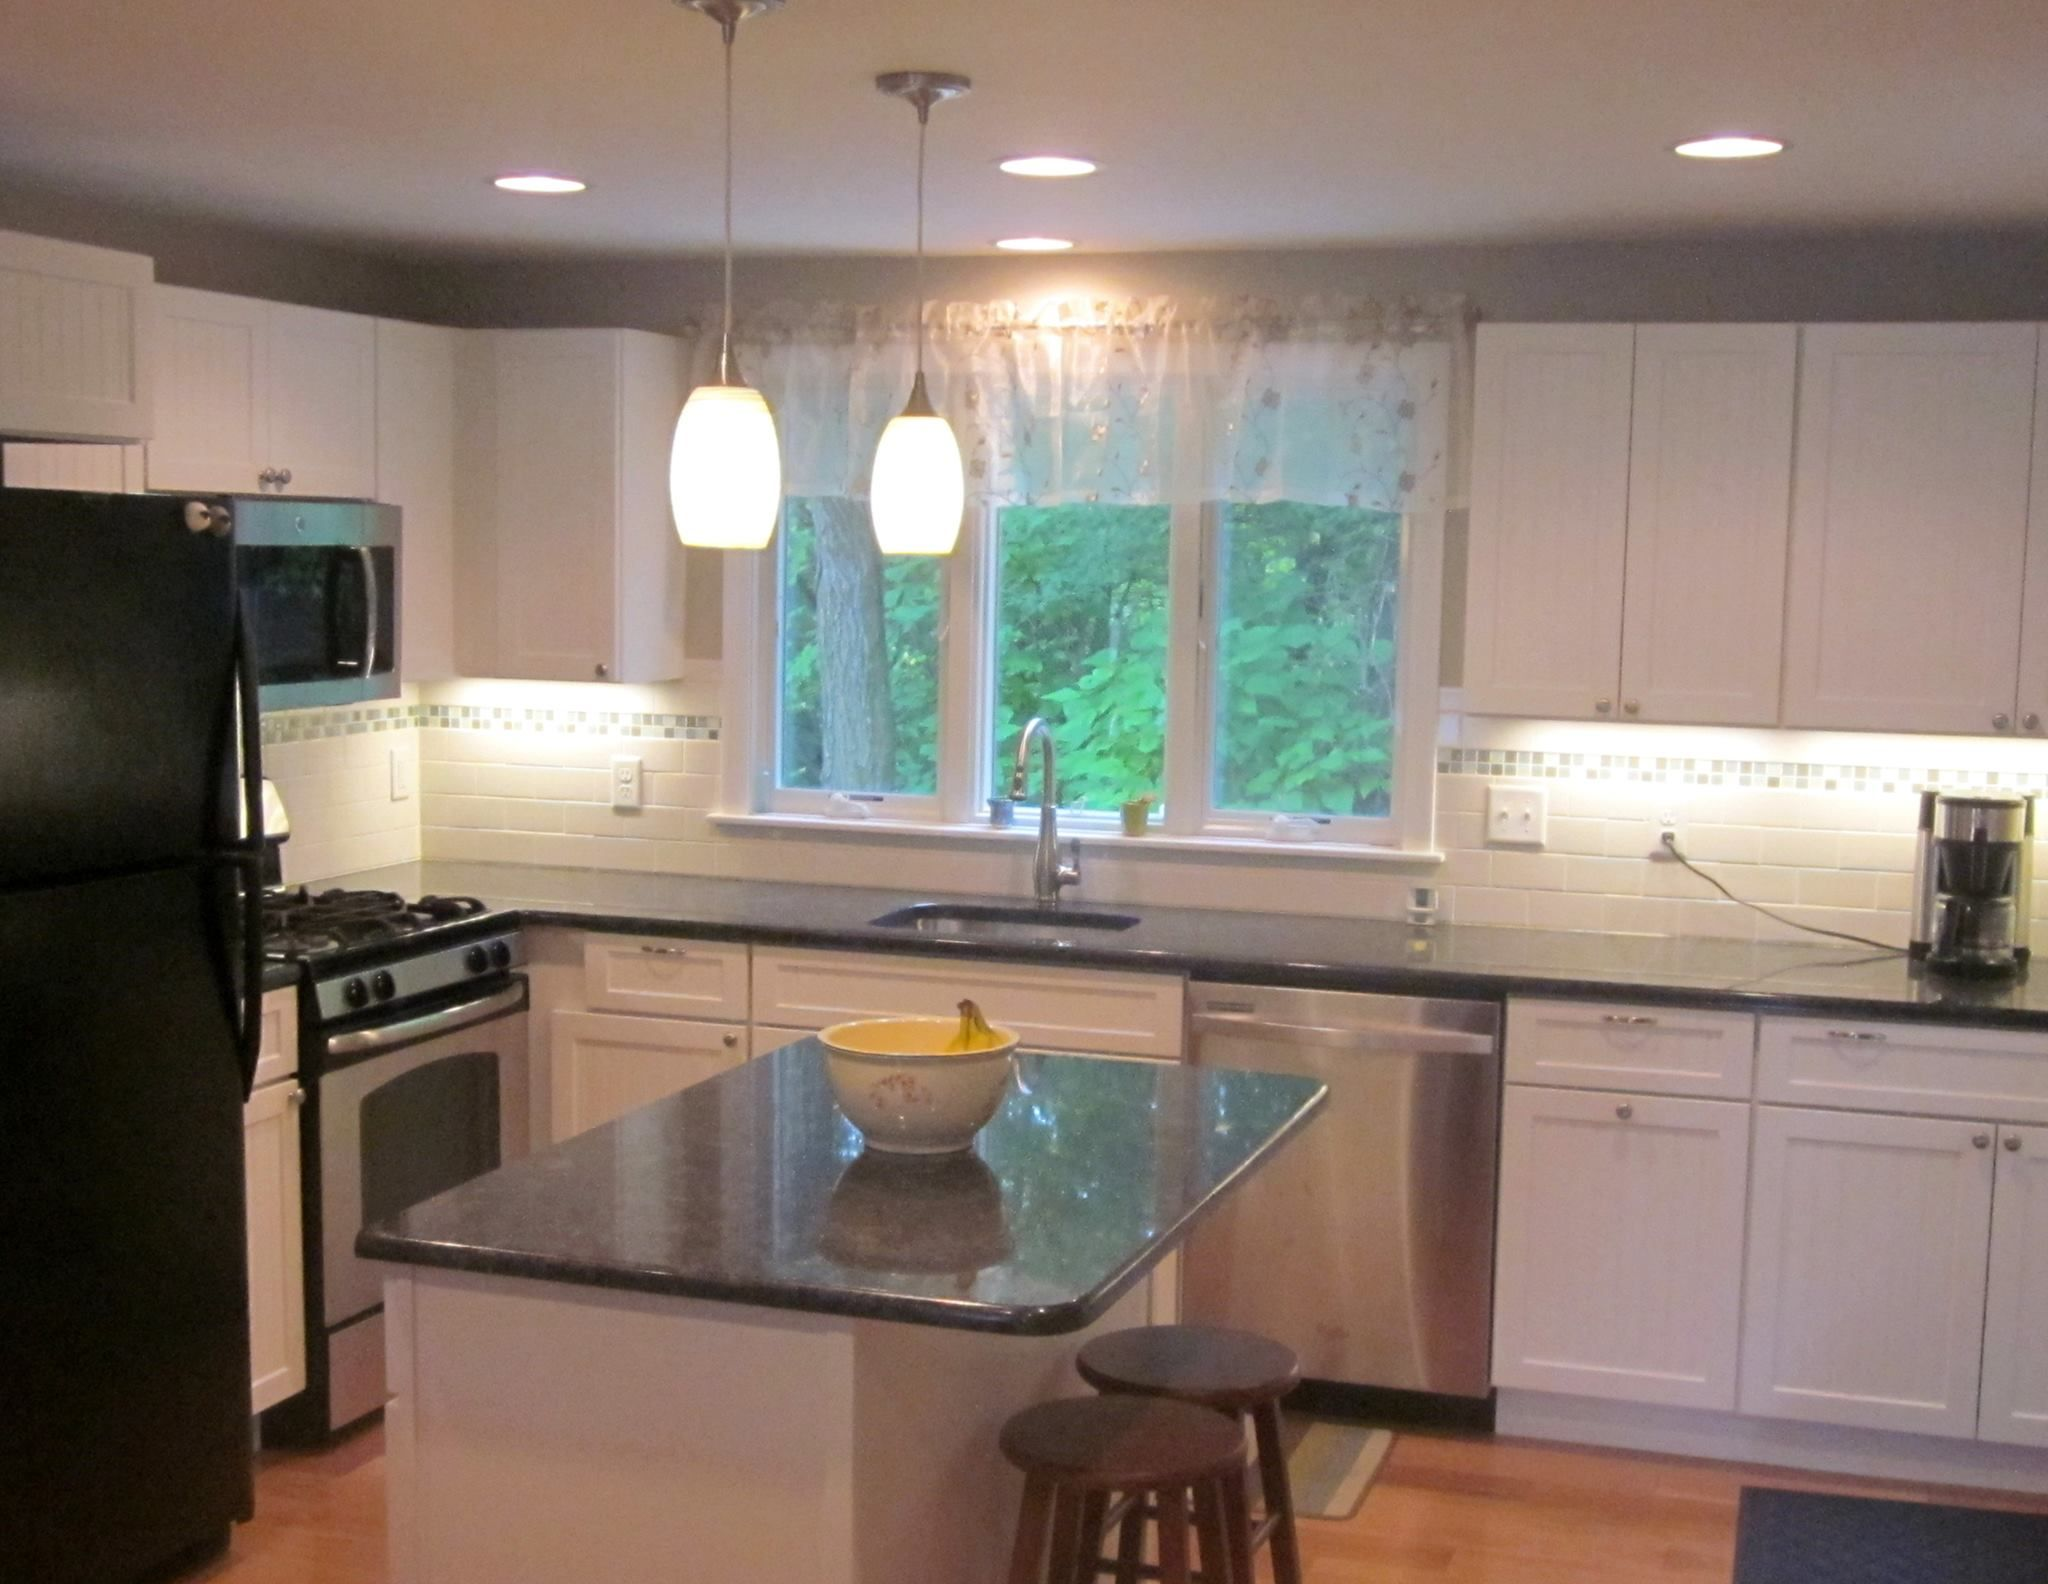 A Complete Gut Down To Bare Studs Renovation With New Medallion Cabinets New Island Wood Floor Ti Medallion Cabinets Under Cabinet Lighting Cabinet Lighting